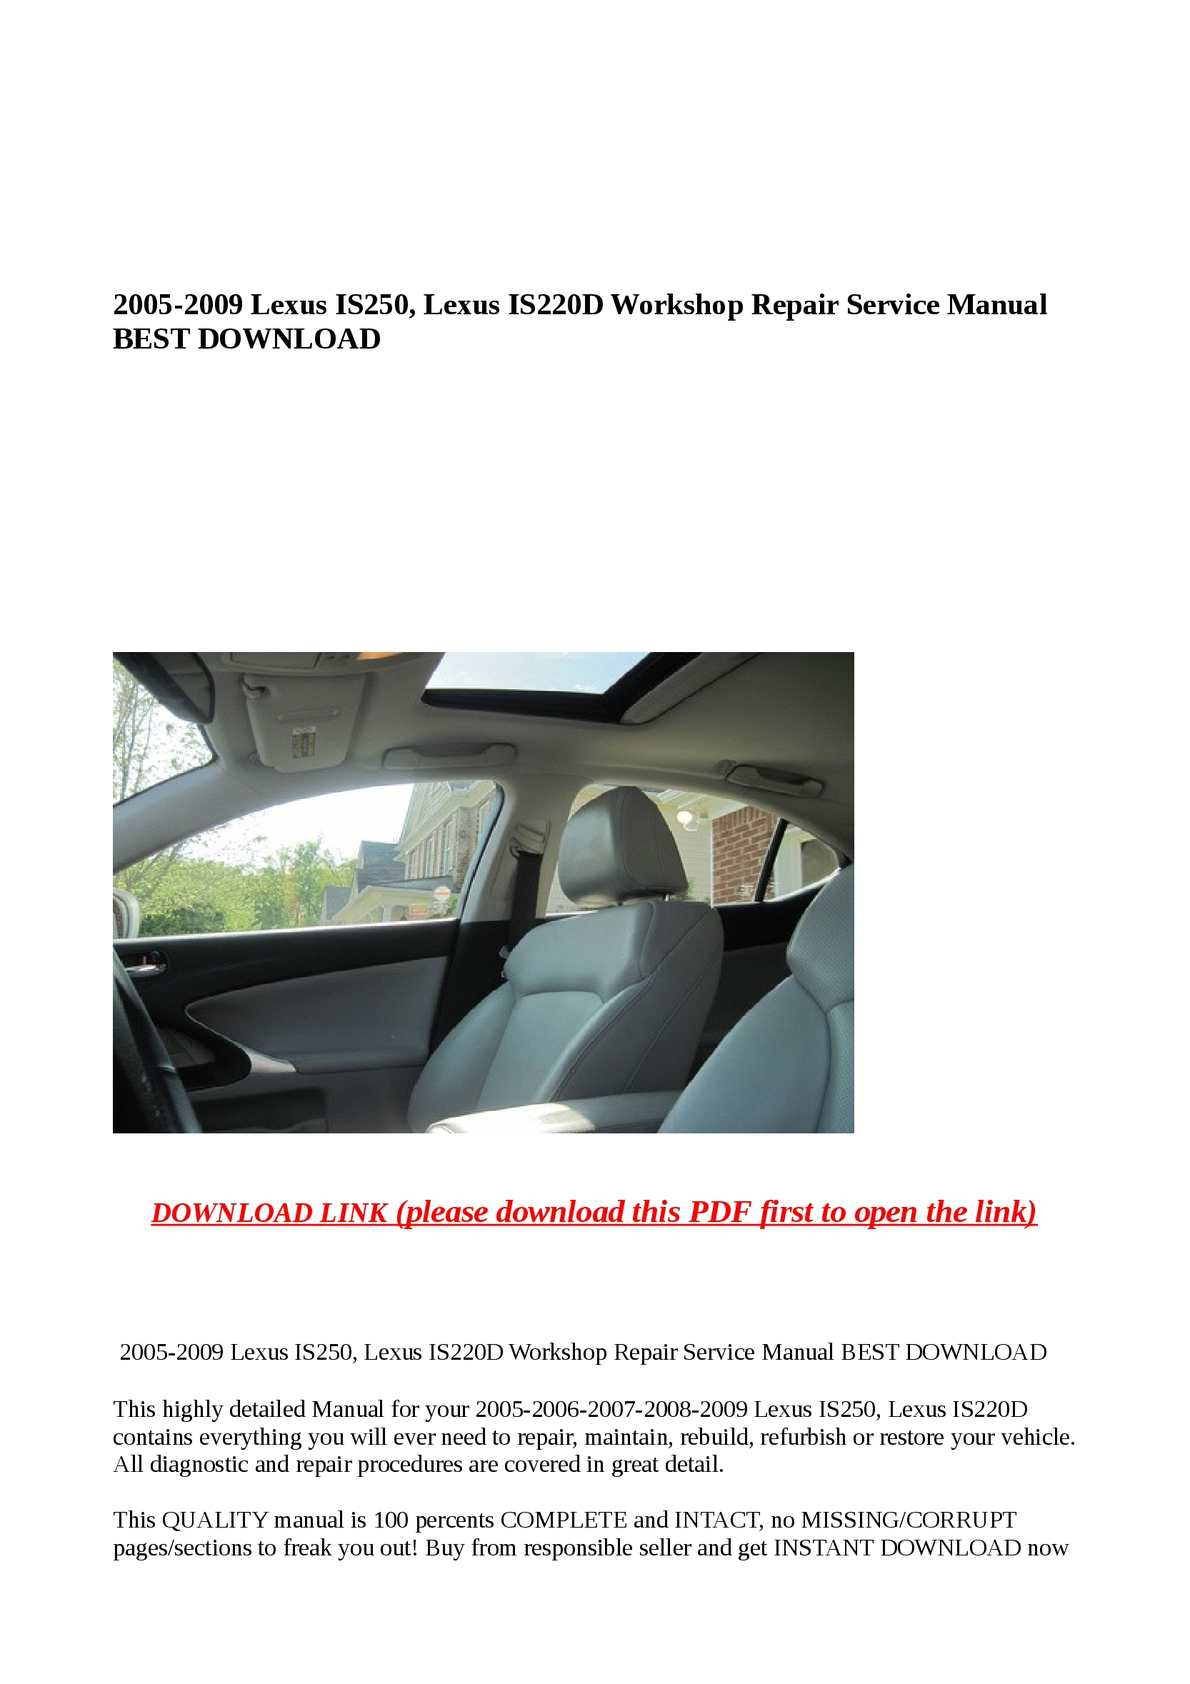 Lexus Is 220d Wiring Diagram Complete Diagrams Isf Calam O 2005 2009 Is250 Is220d Workshop Repair Rh Calameo Com 200 From New Zealand 2014